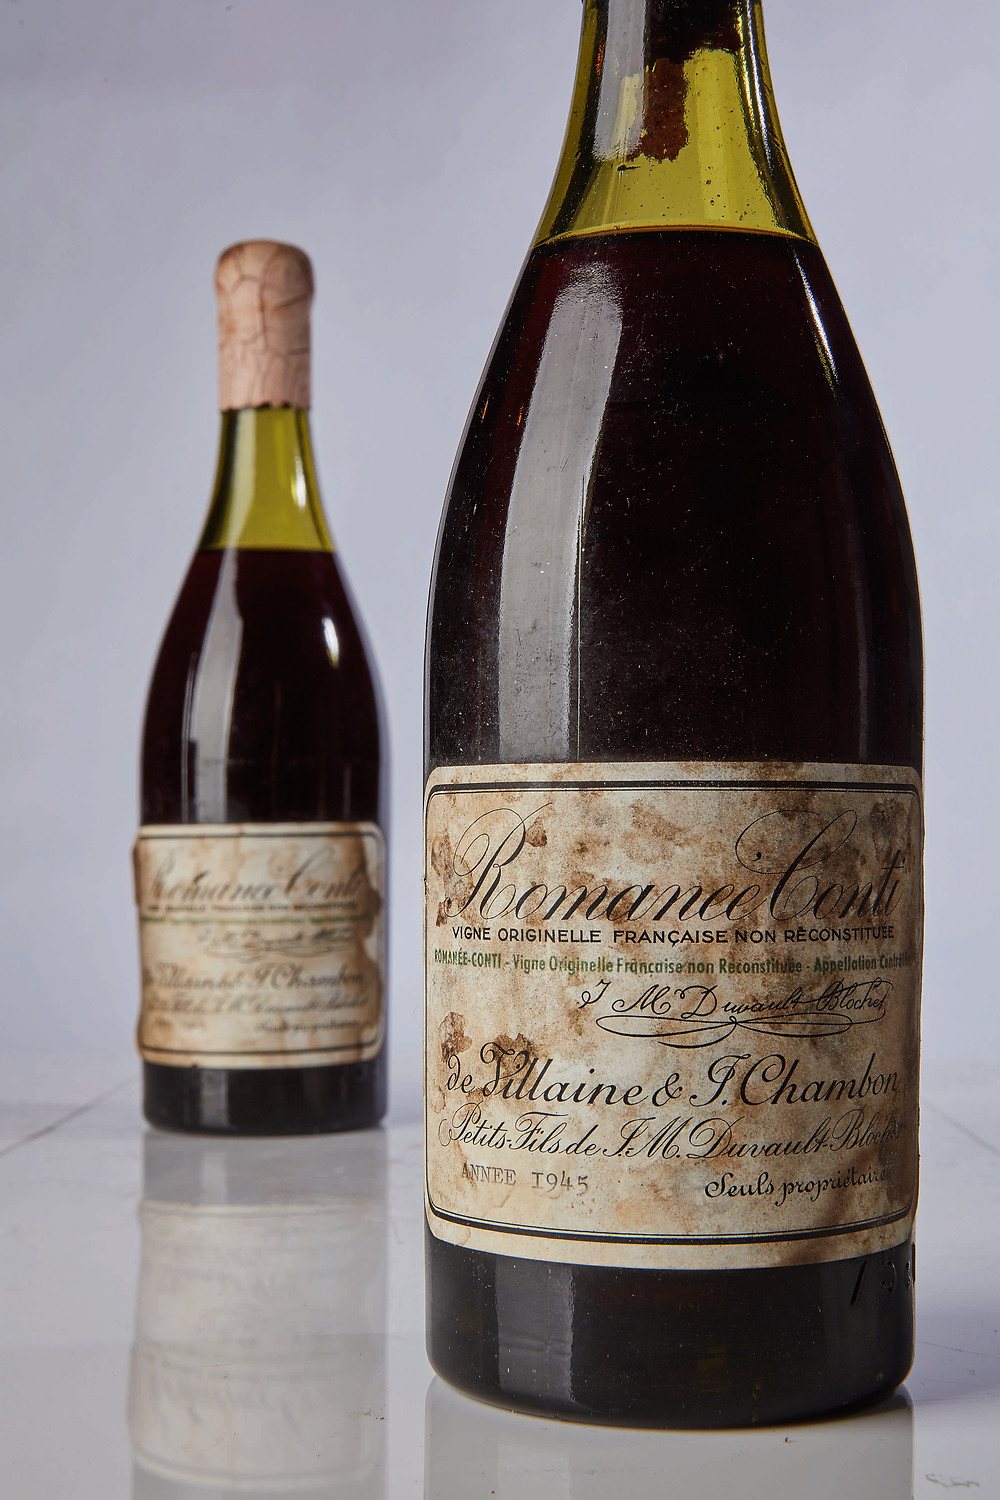 9921 Lots 84 & 85 Romanee Conti 1945 (so